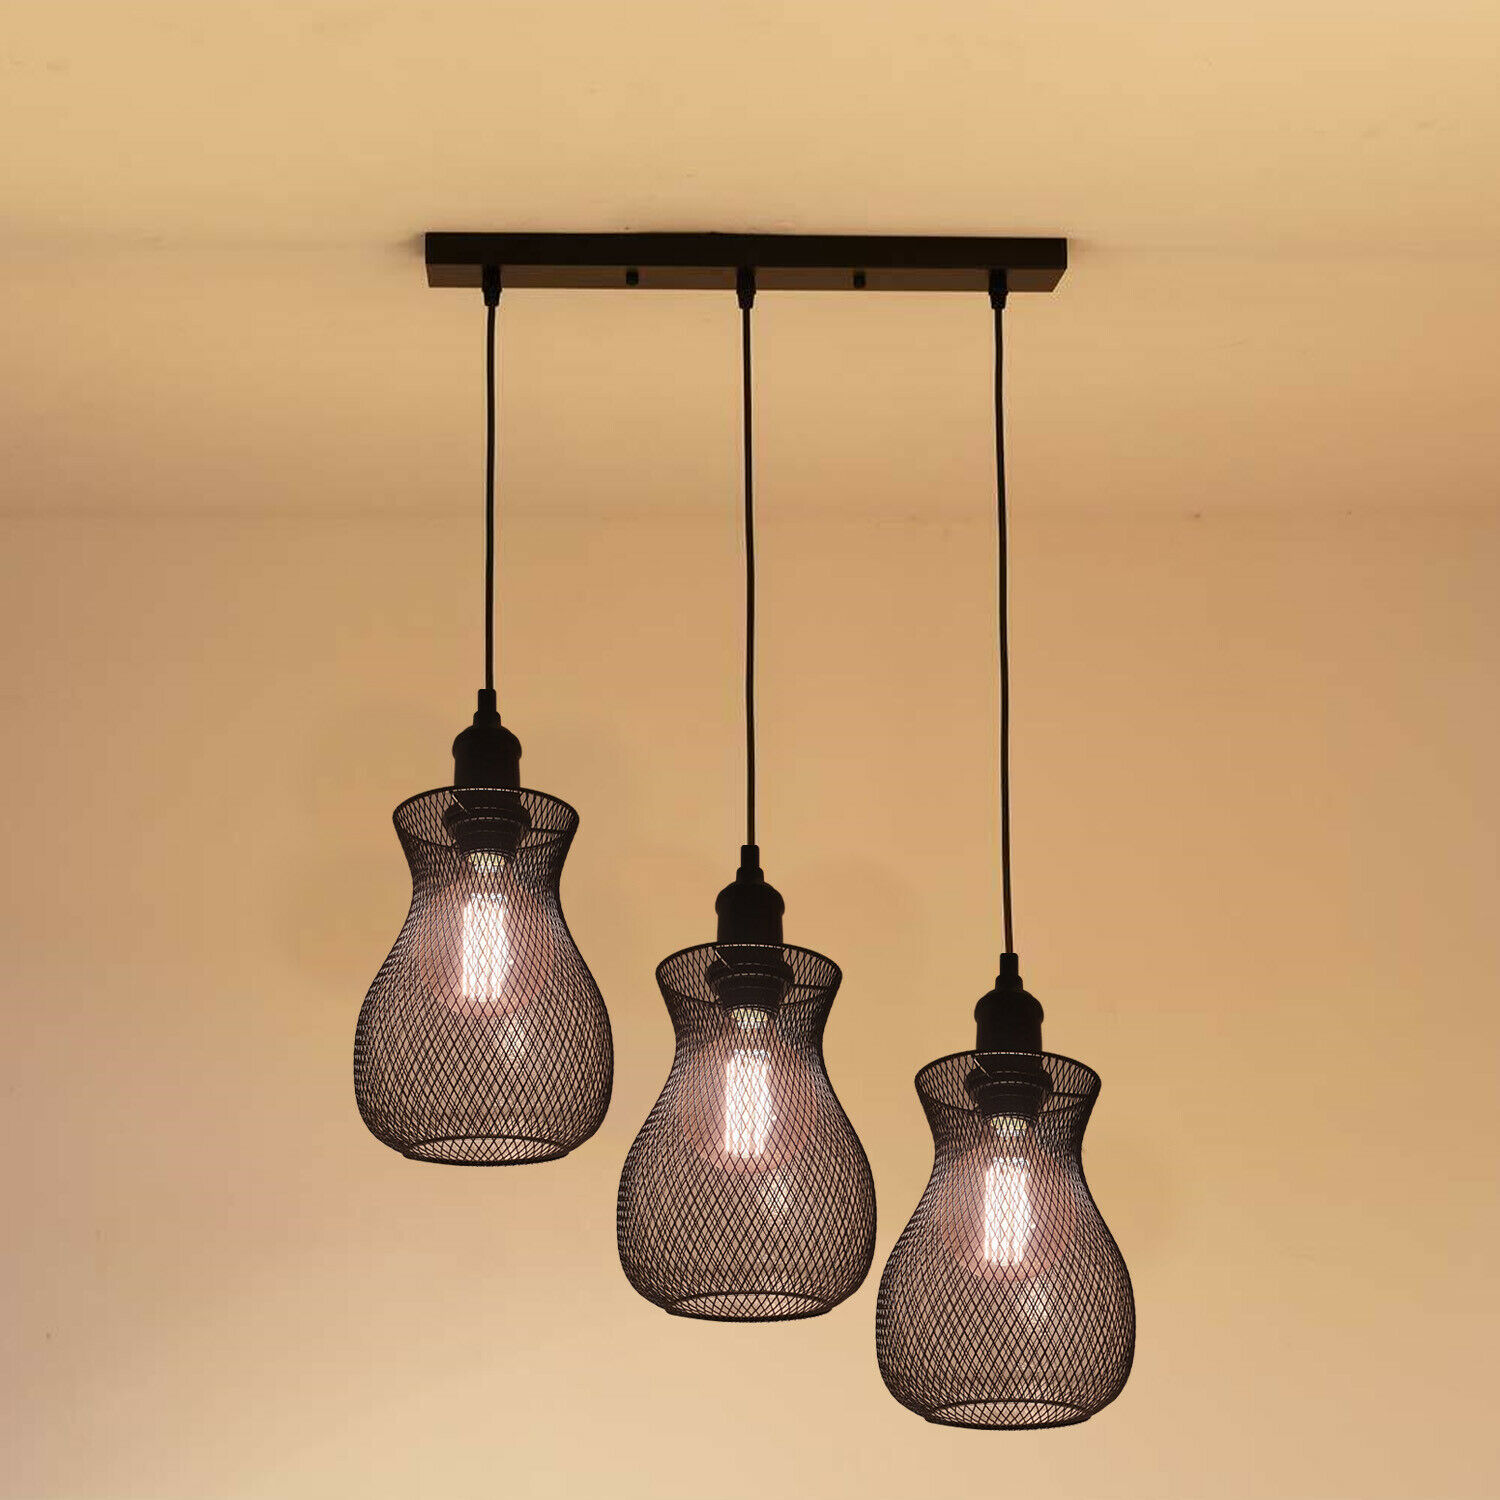 Lampade Sospensione A Grappolo details about style chandelier modern ceiling shade metal light 3 head  cluster- show original title